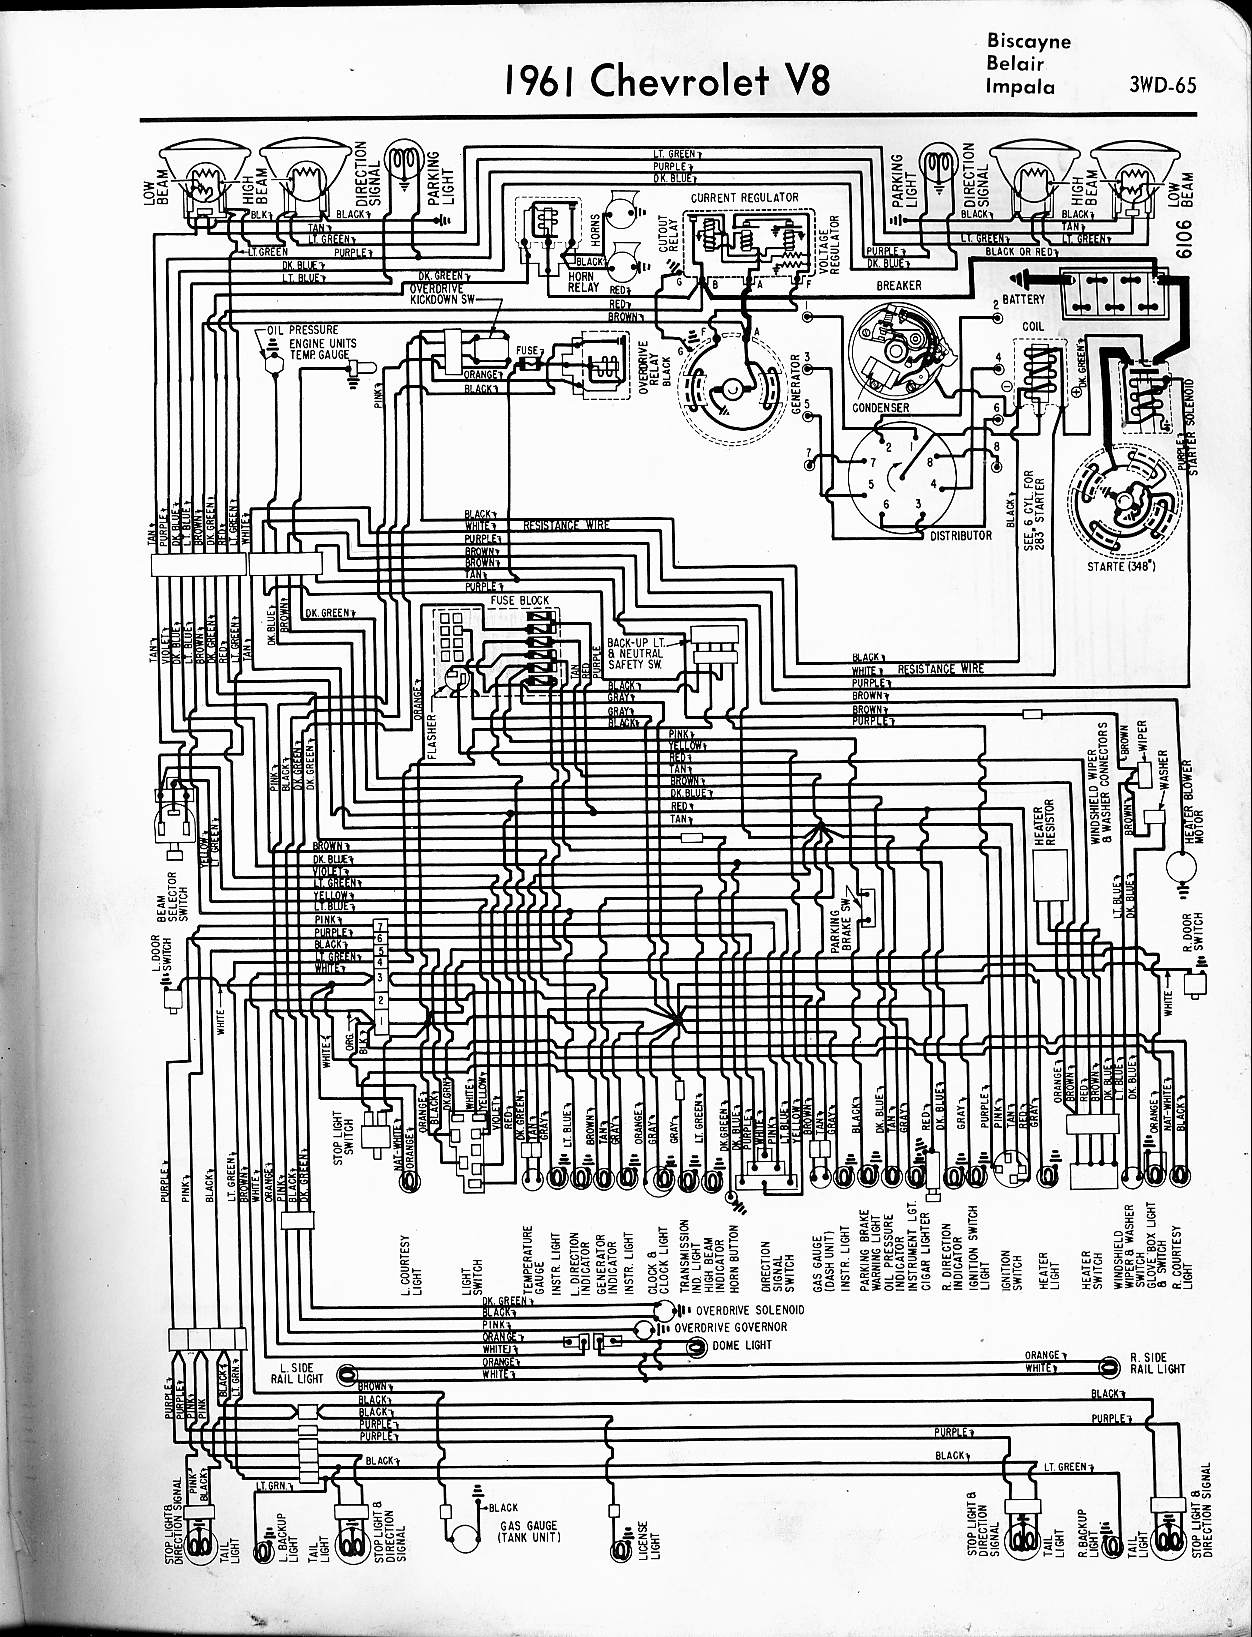 65 bel air wire diagram 57 bel air wiring diagram 1963 bel air wiring diagram | better wiring diagram online #4